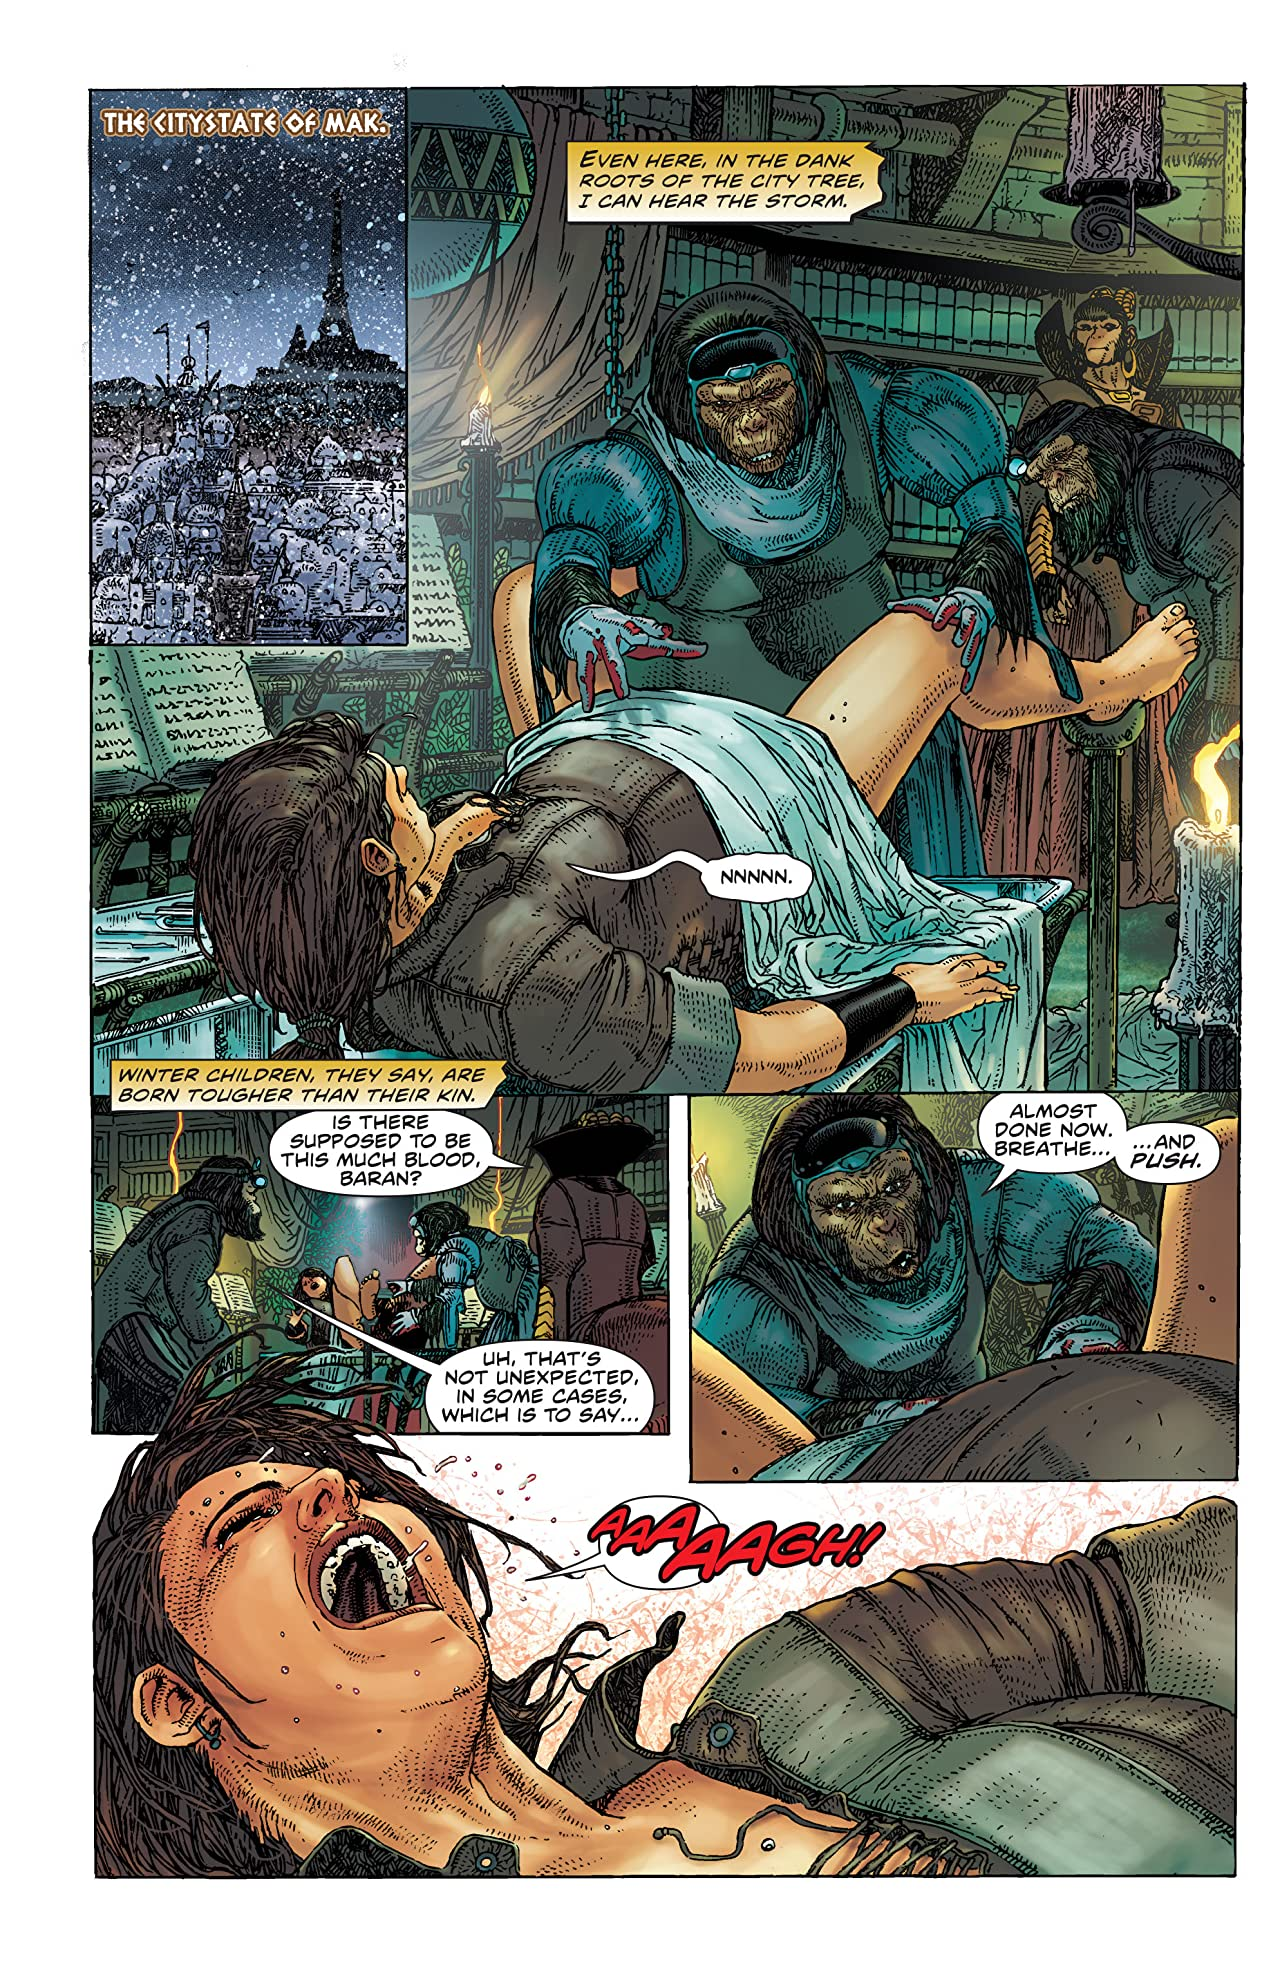 Planet of the Apes #11